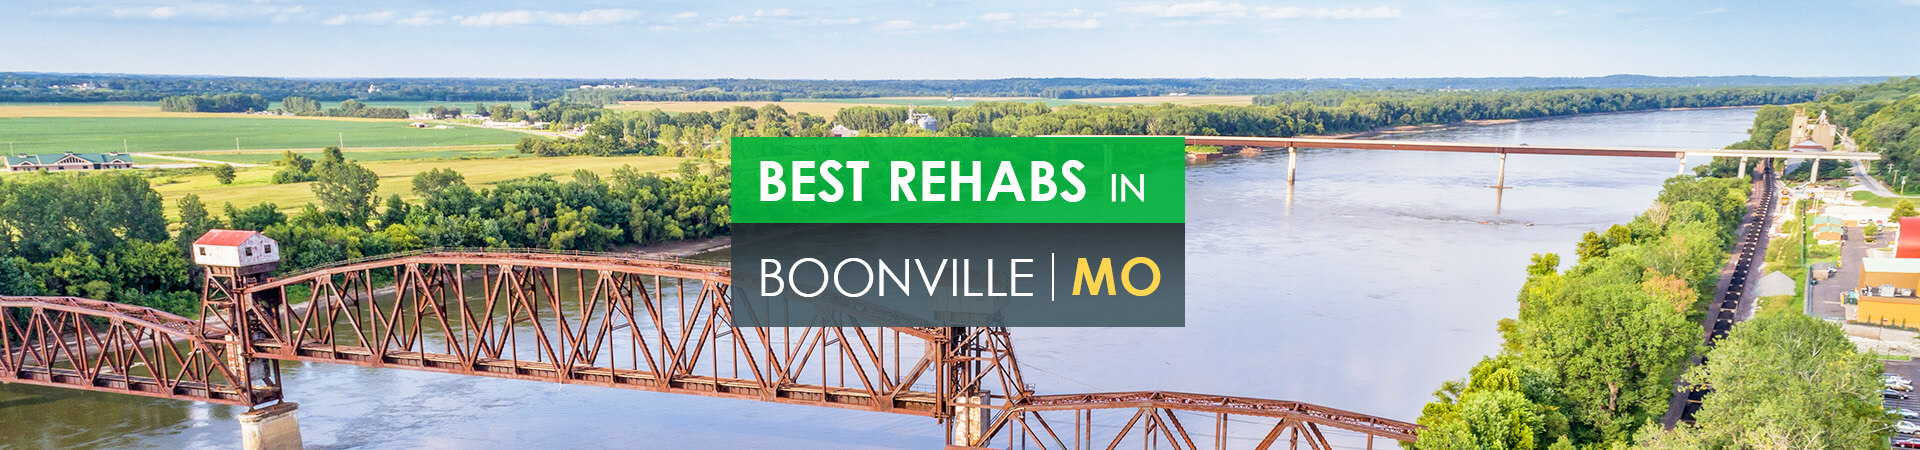 Best rehabs in Boonville, MO